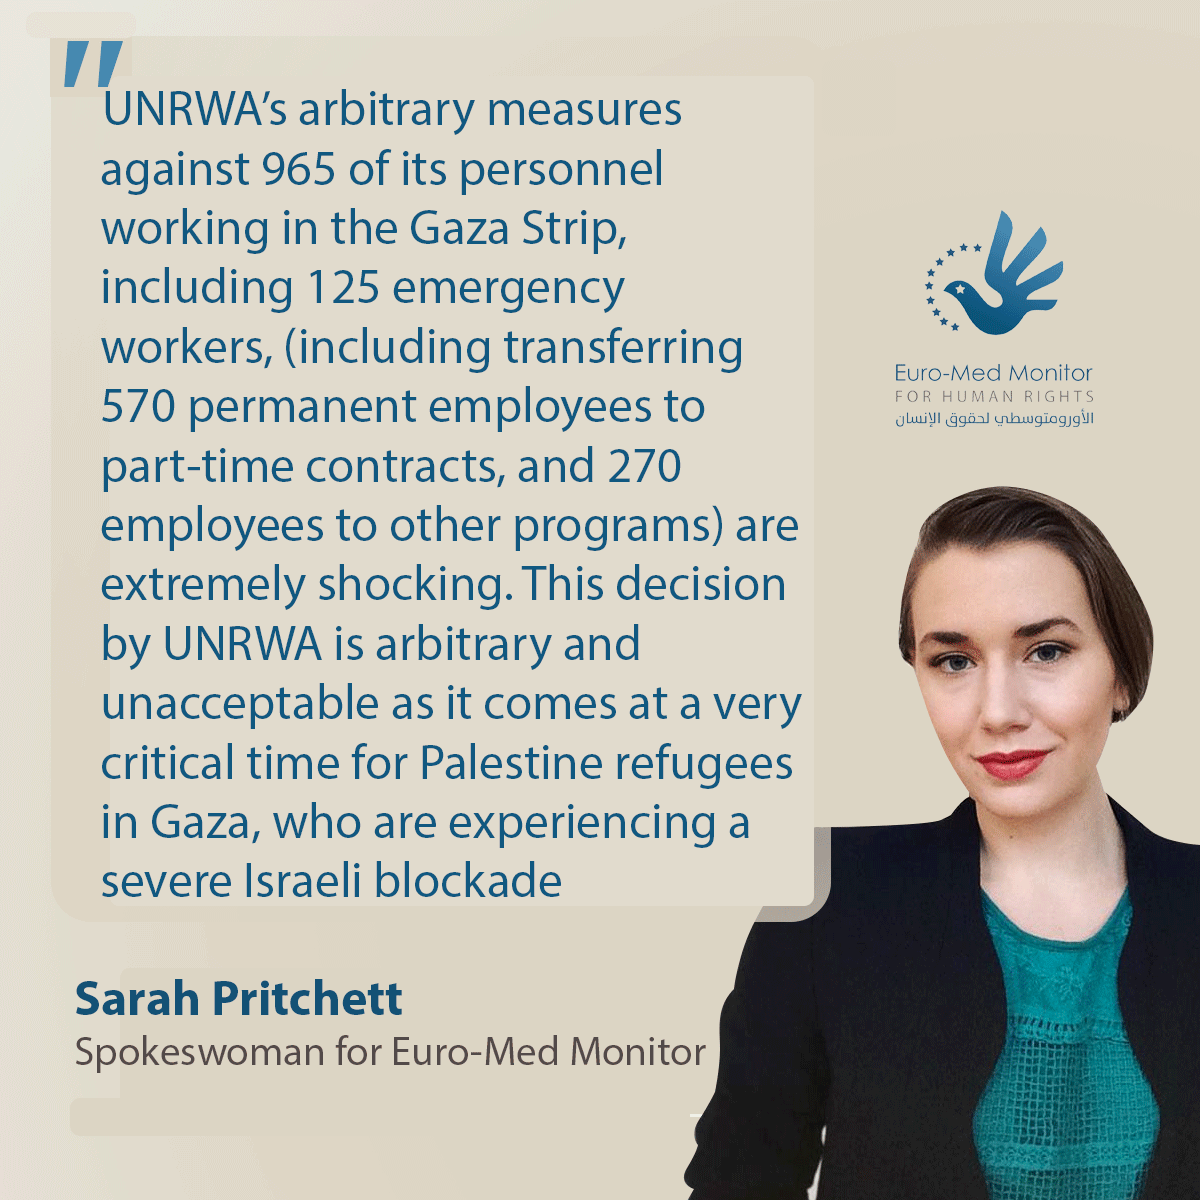 UNRWA measures against nearly 1,000 of its Gaza employees arbitrary and unjustified